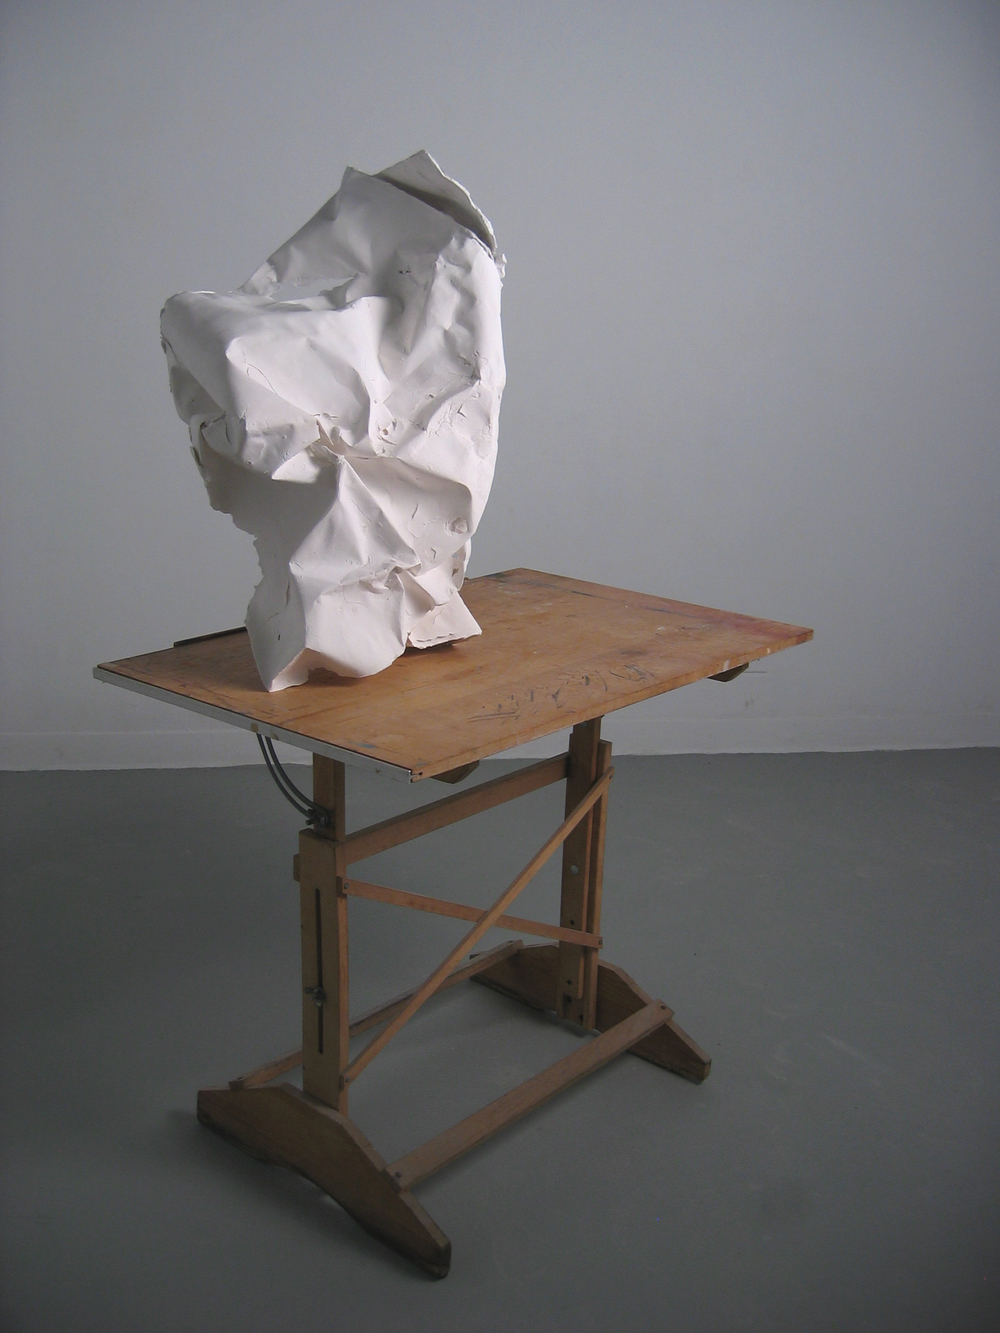 Cast porcelain, drafting table.